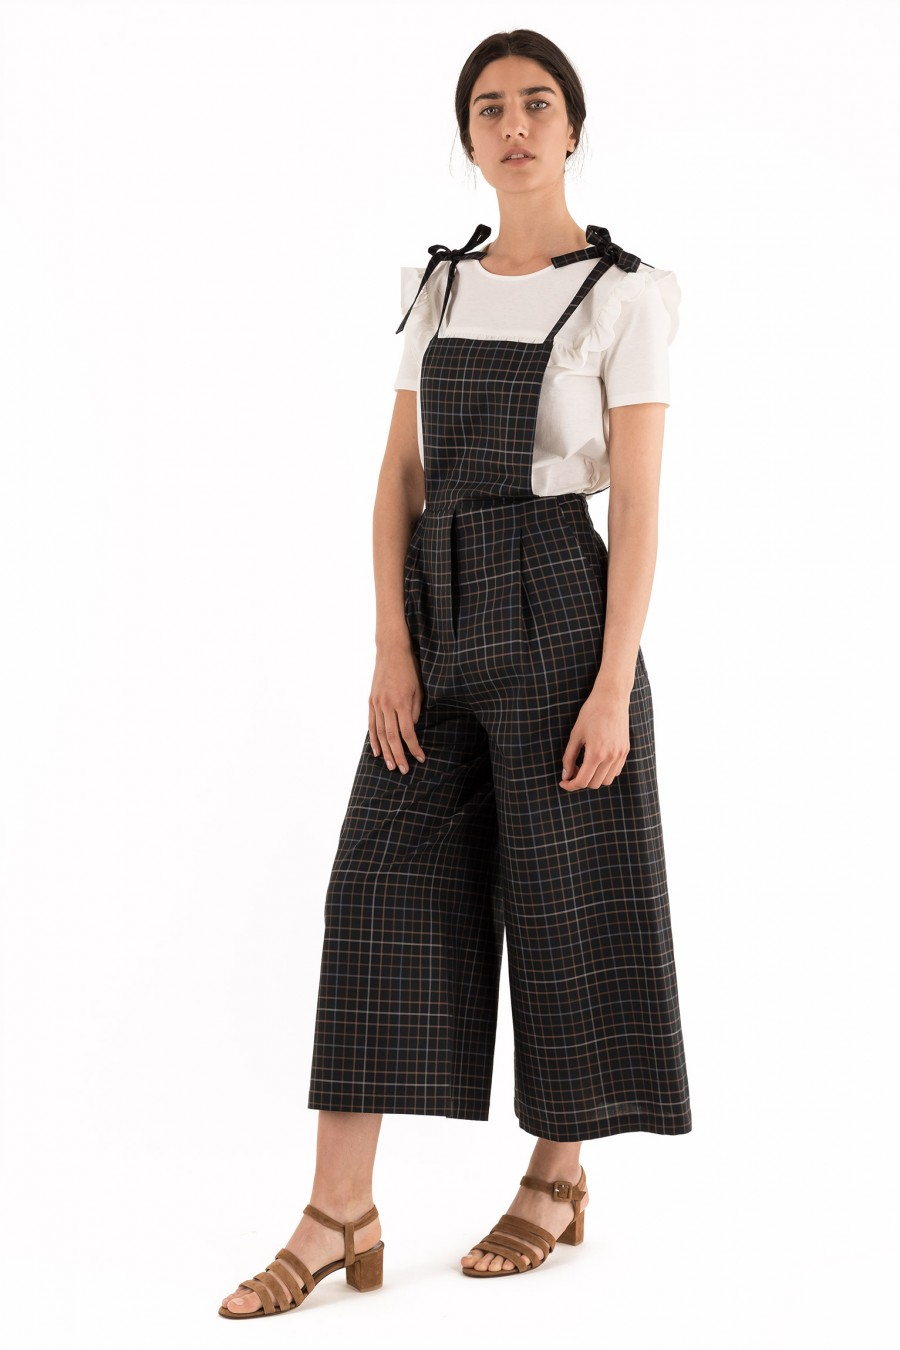 Black overalls with checks